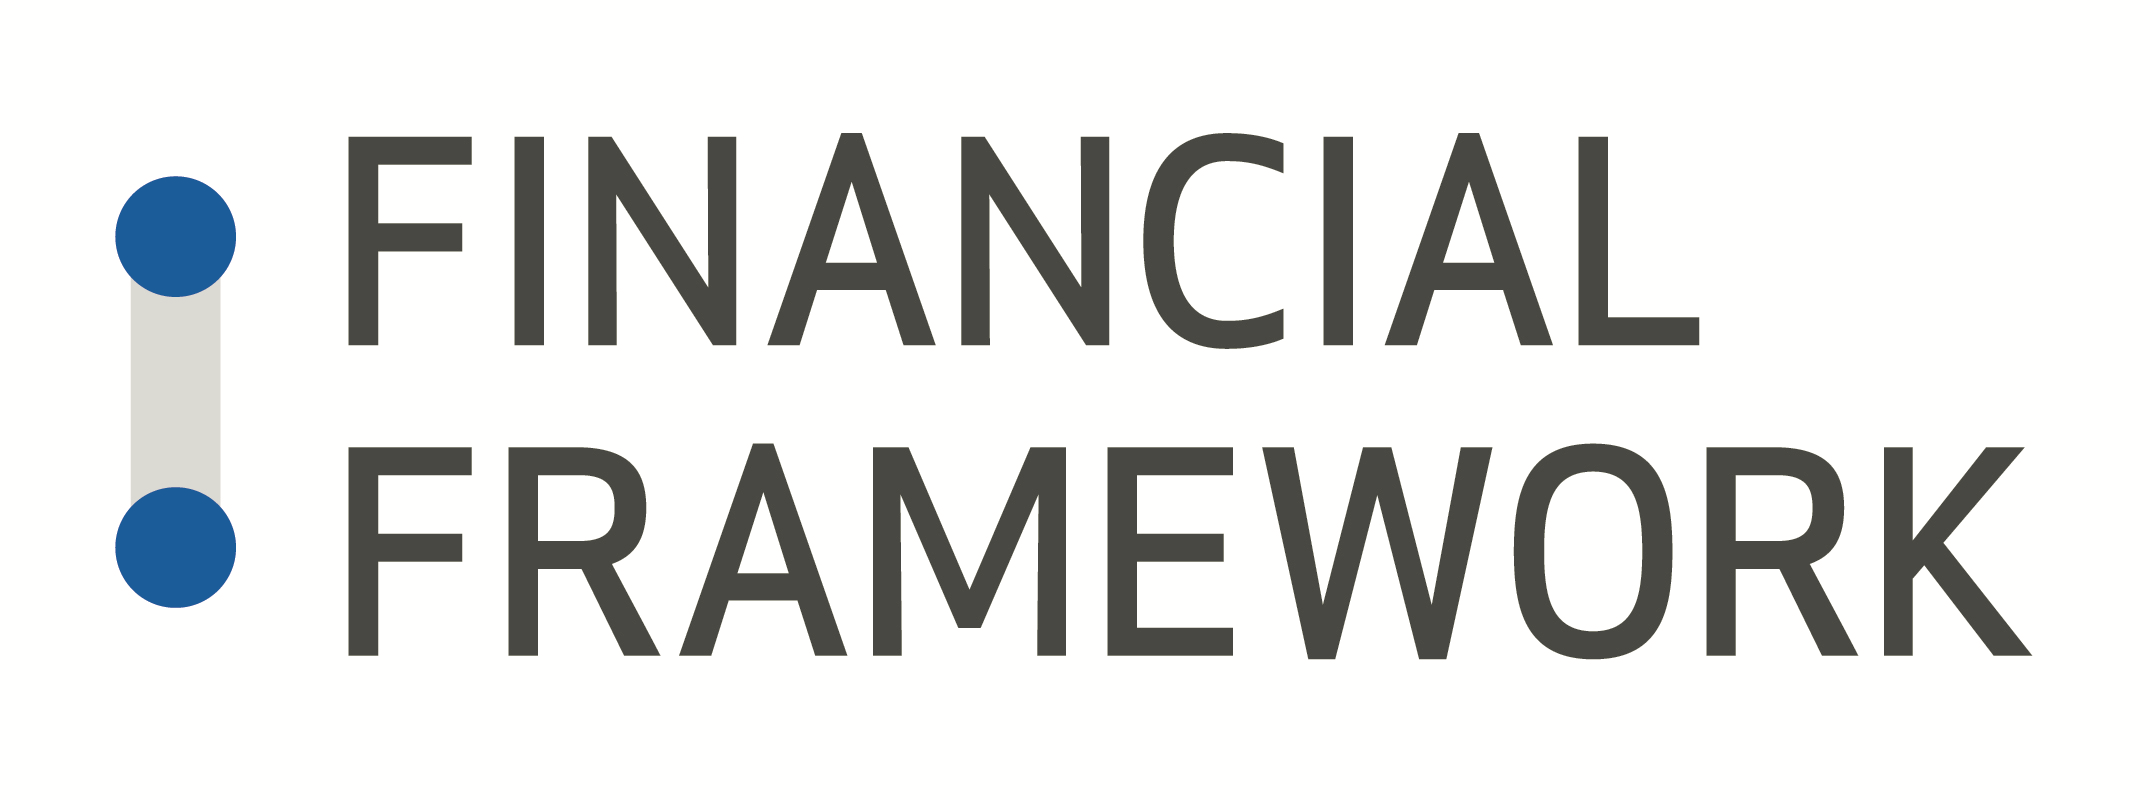 Financial Framework Logo